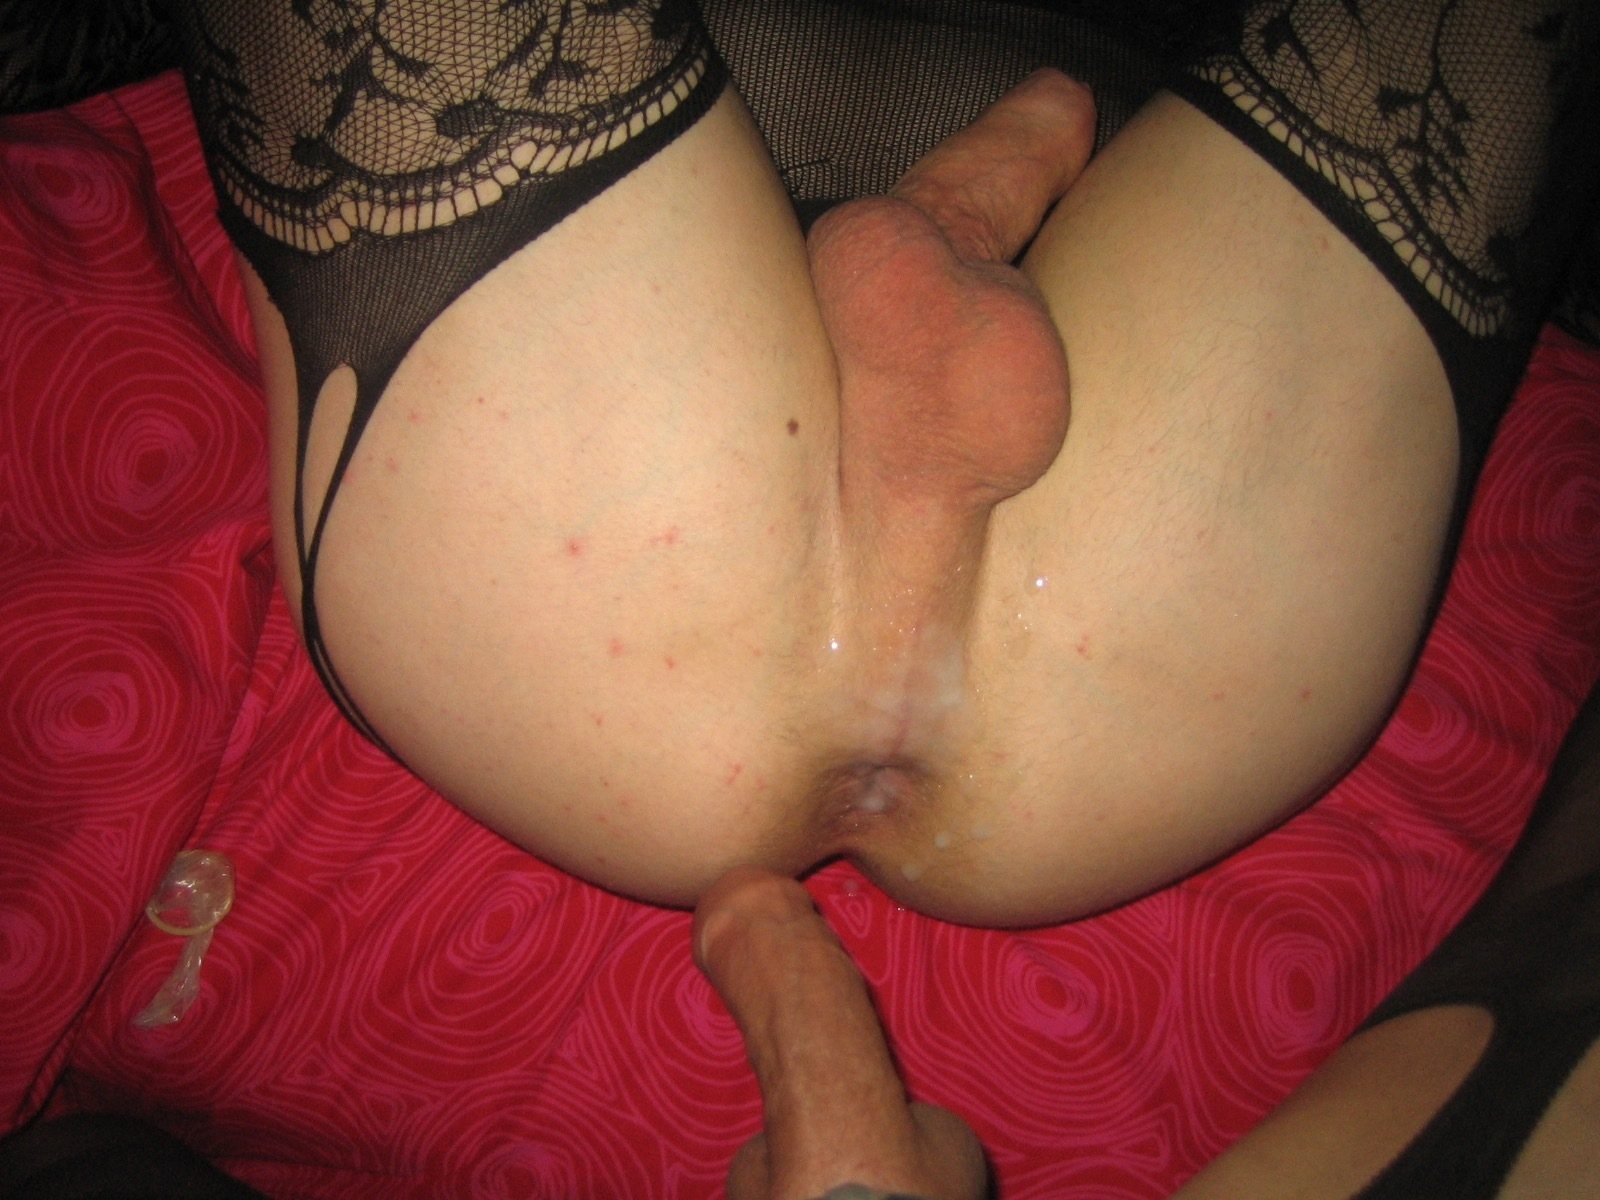 Ject Sissy Faggot Whore Exposed (10/19)